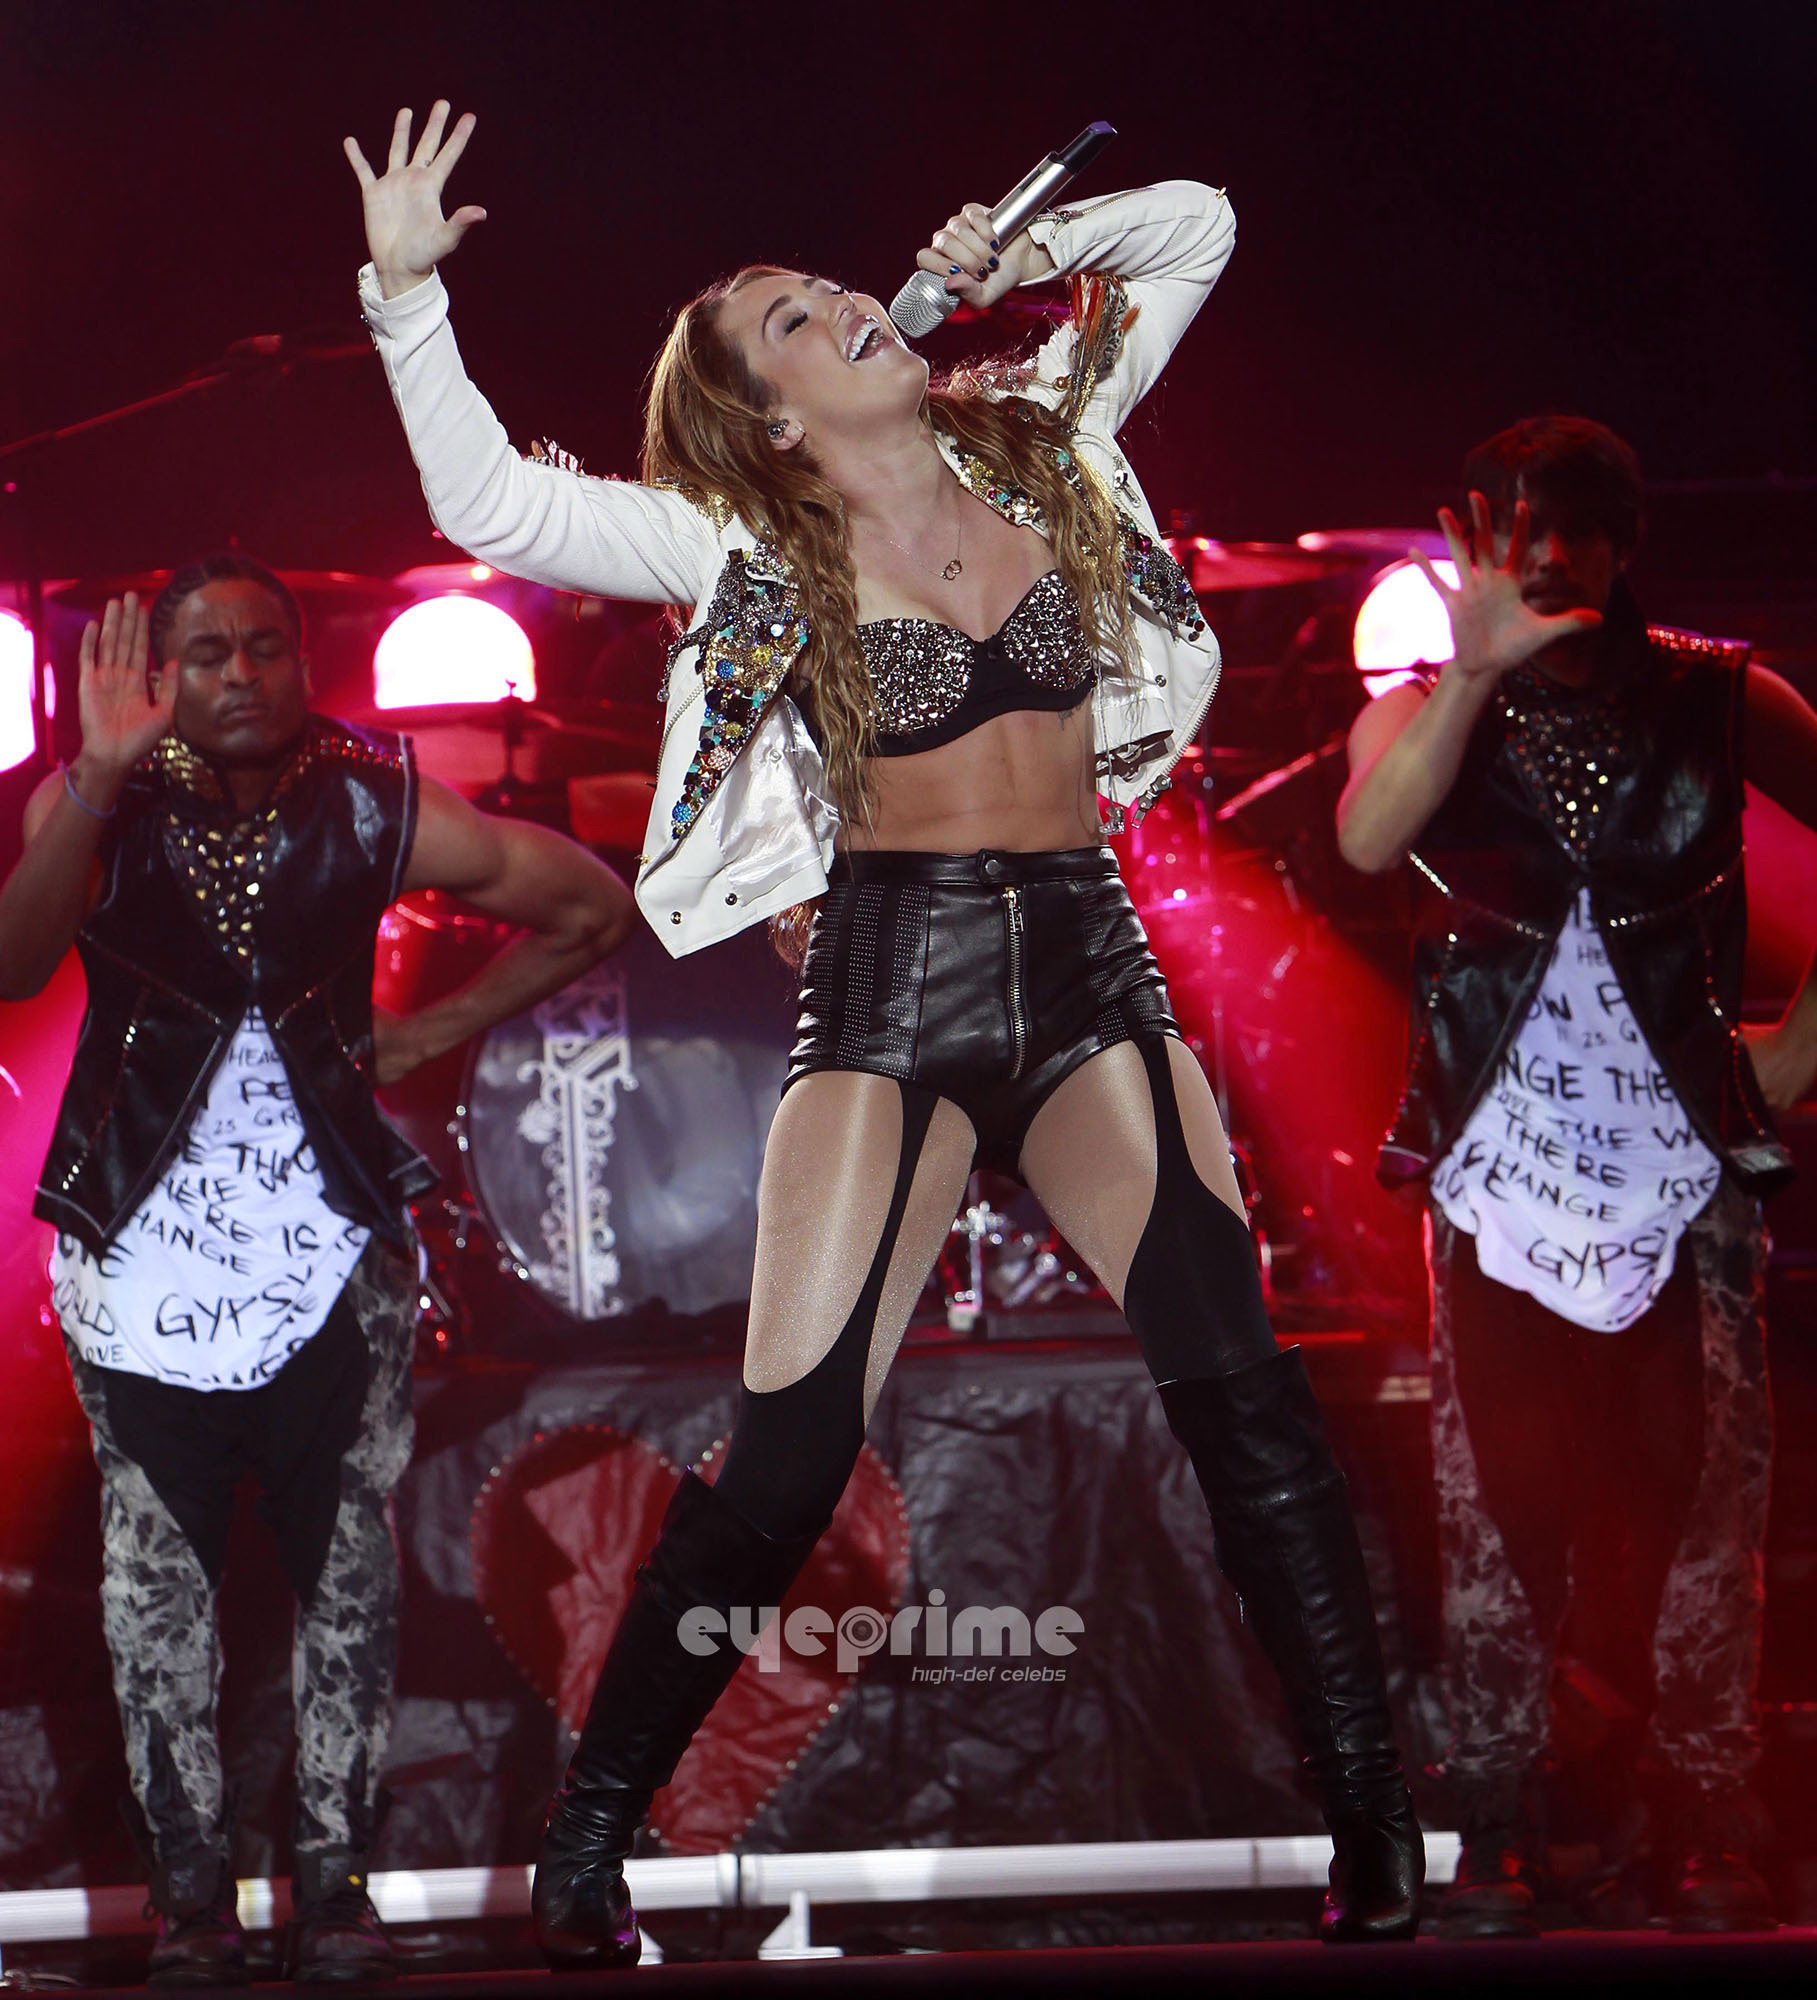 Miley Cyrus performs during a concert in Pasay City, Philippines, Jun 17  - miley-cyrus photo